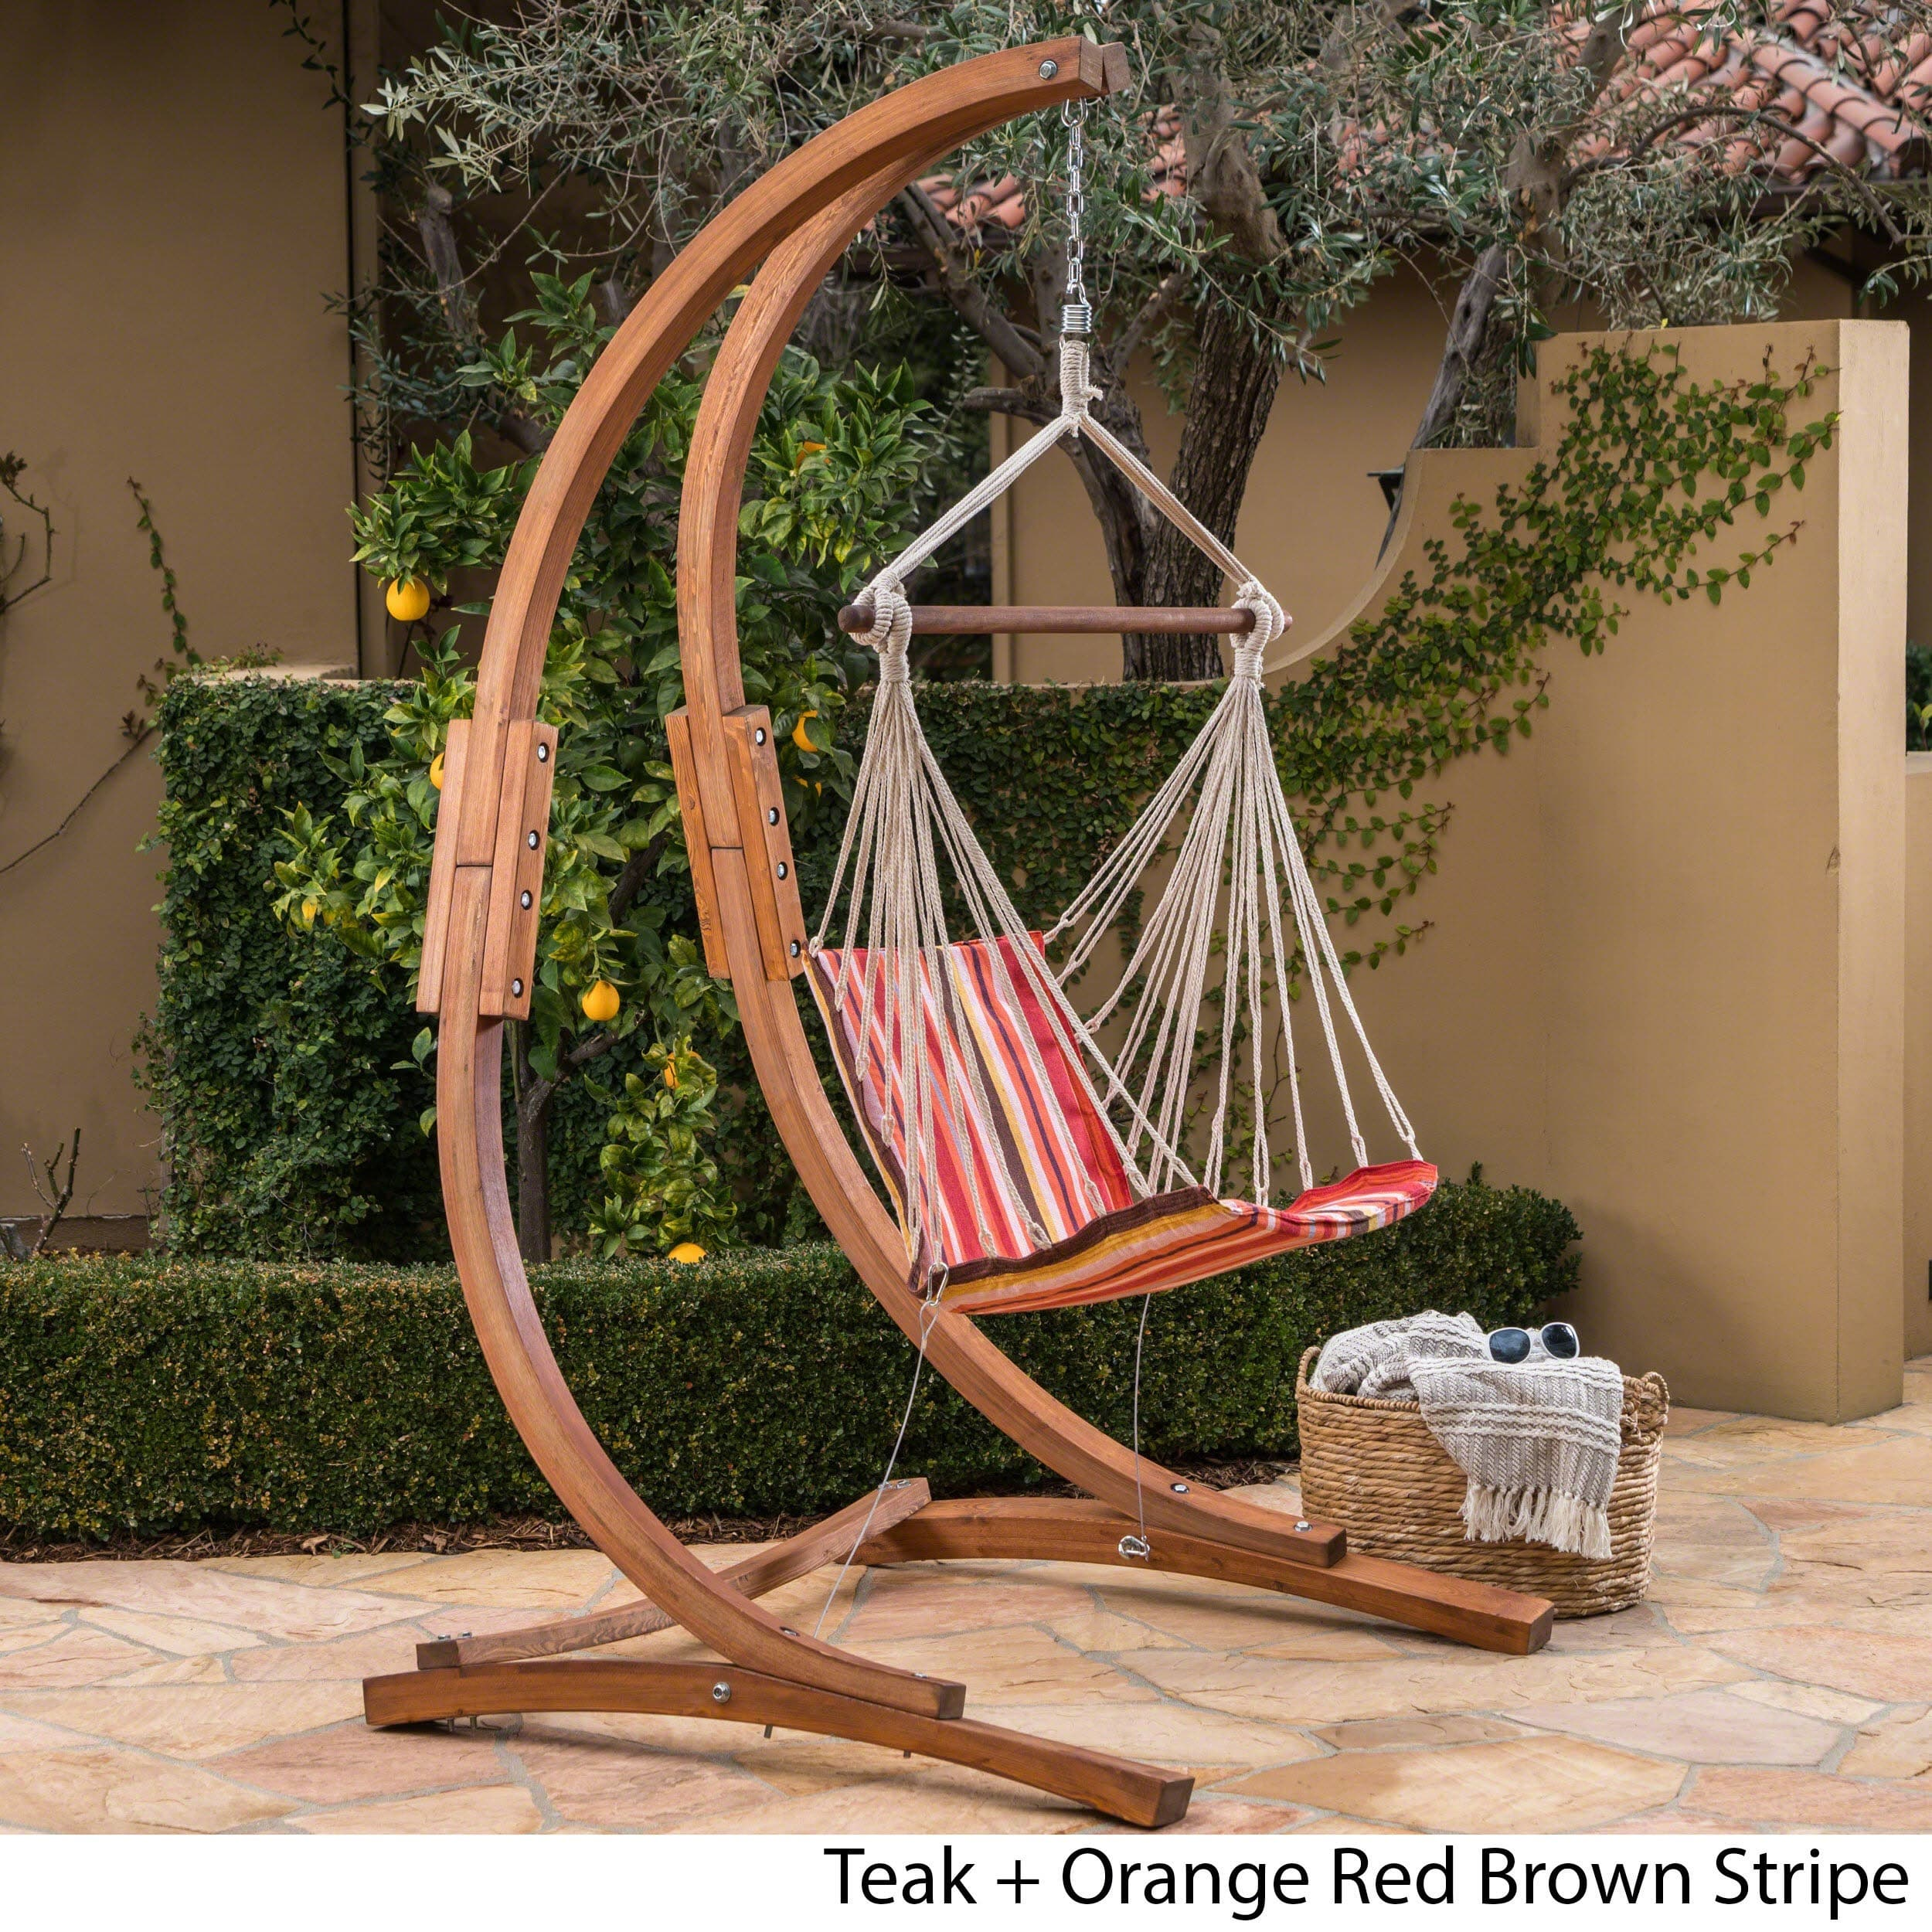 Griffith Outdoor Larch Wood Hammock Chair Swing With Water Resistant